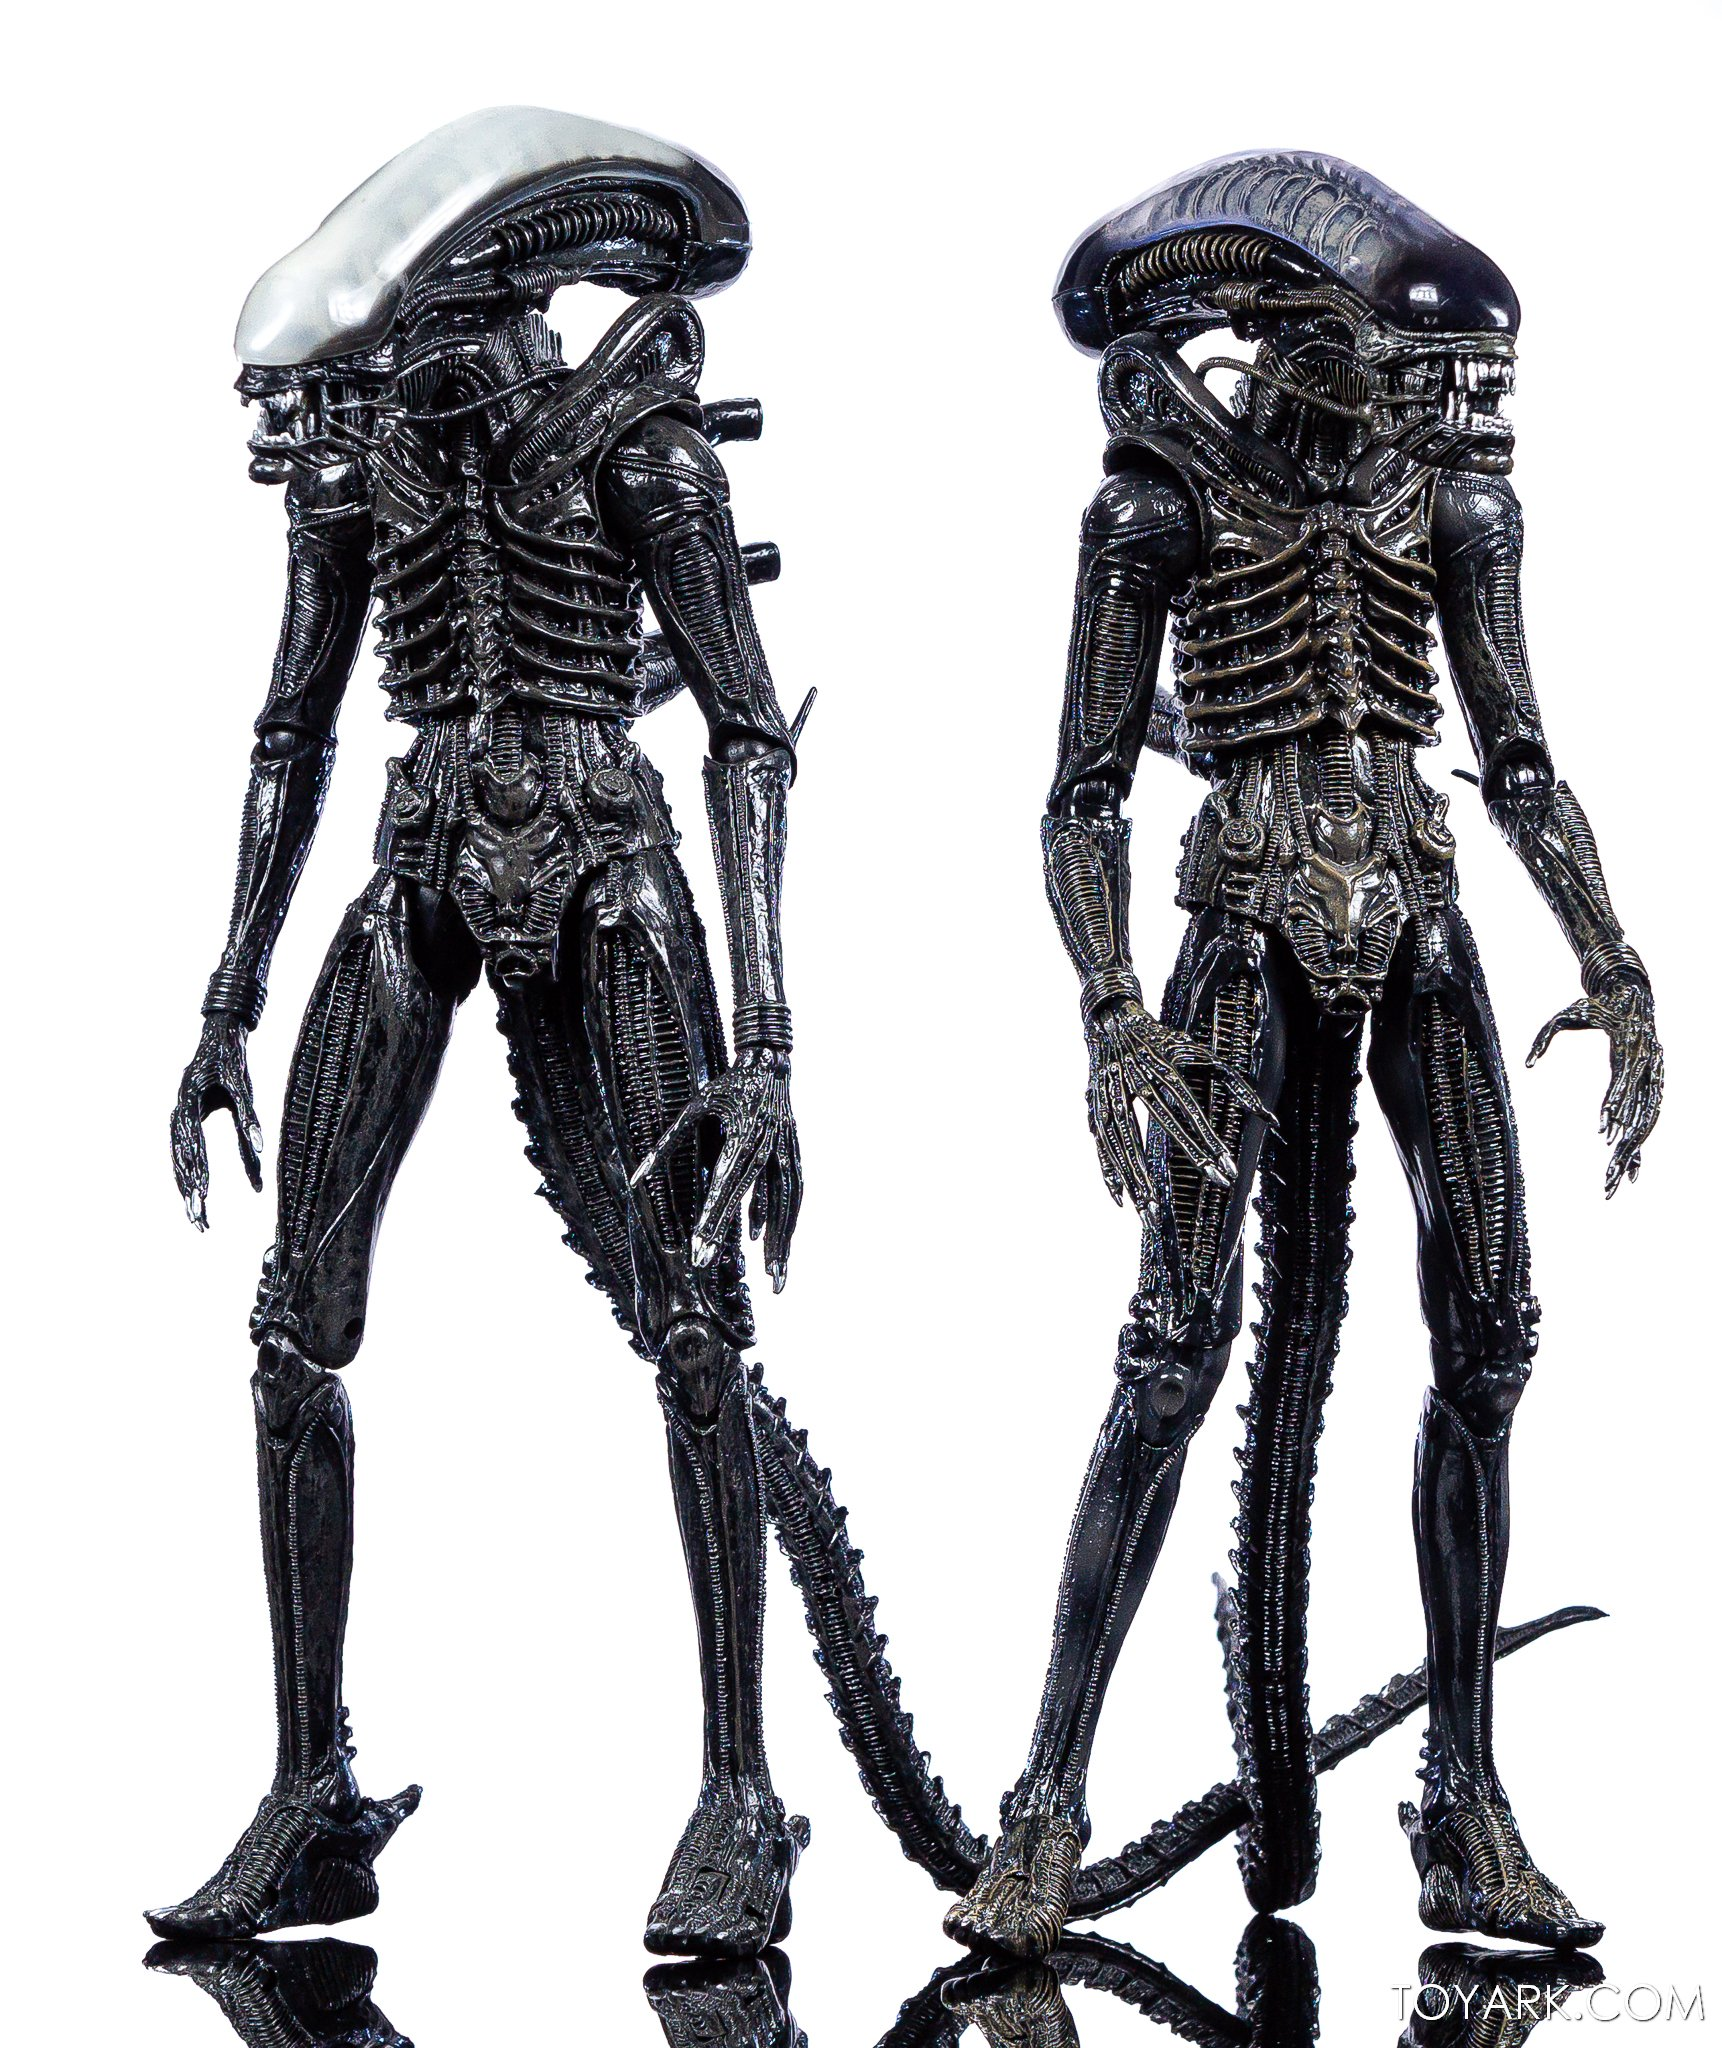 https://news.toyark.com/wp-content/uploads/sites/4/2020/01/NECA-Big-Chap-Alien-Ultimate-032.jpg